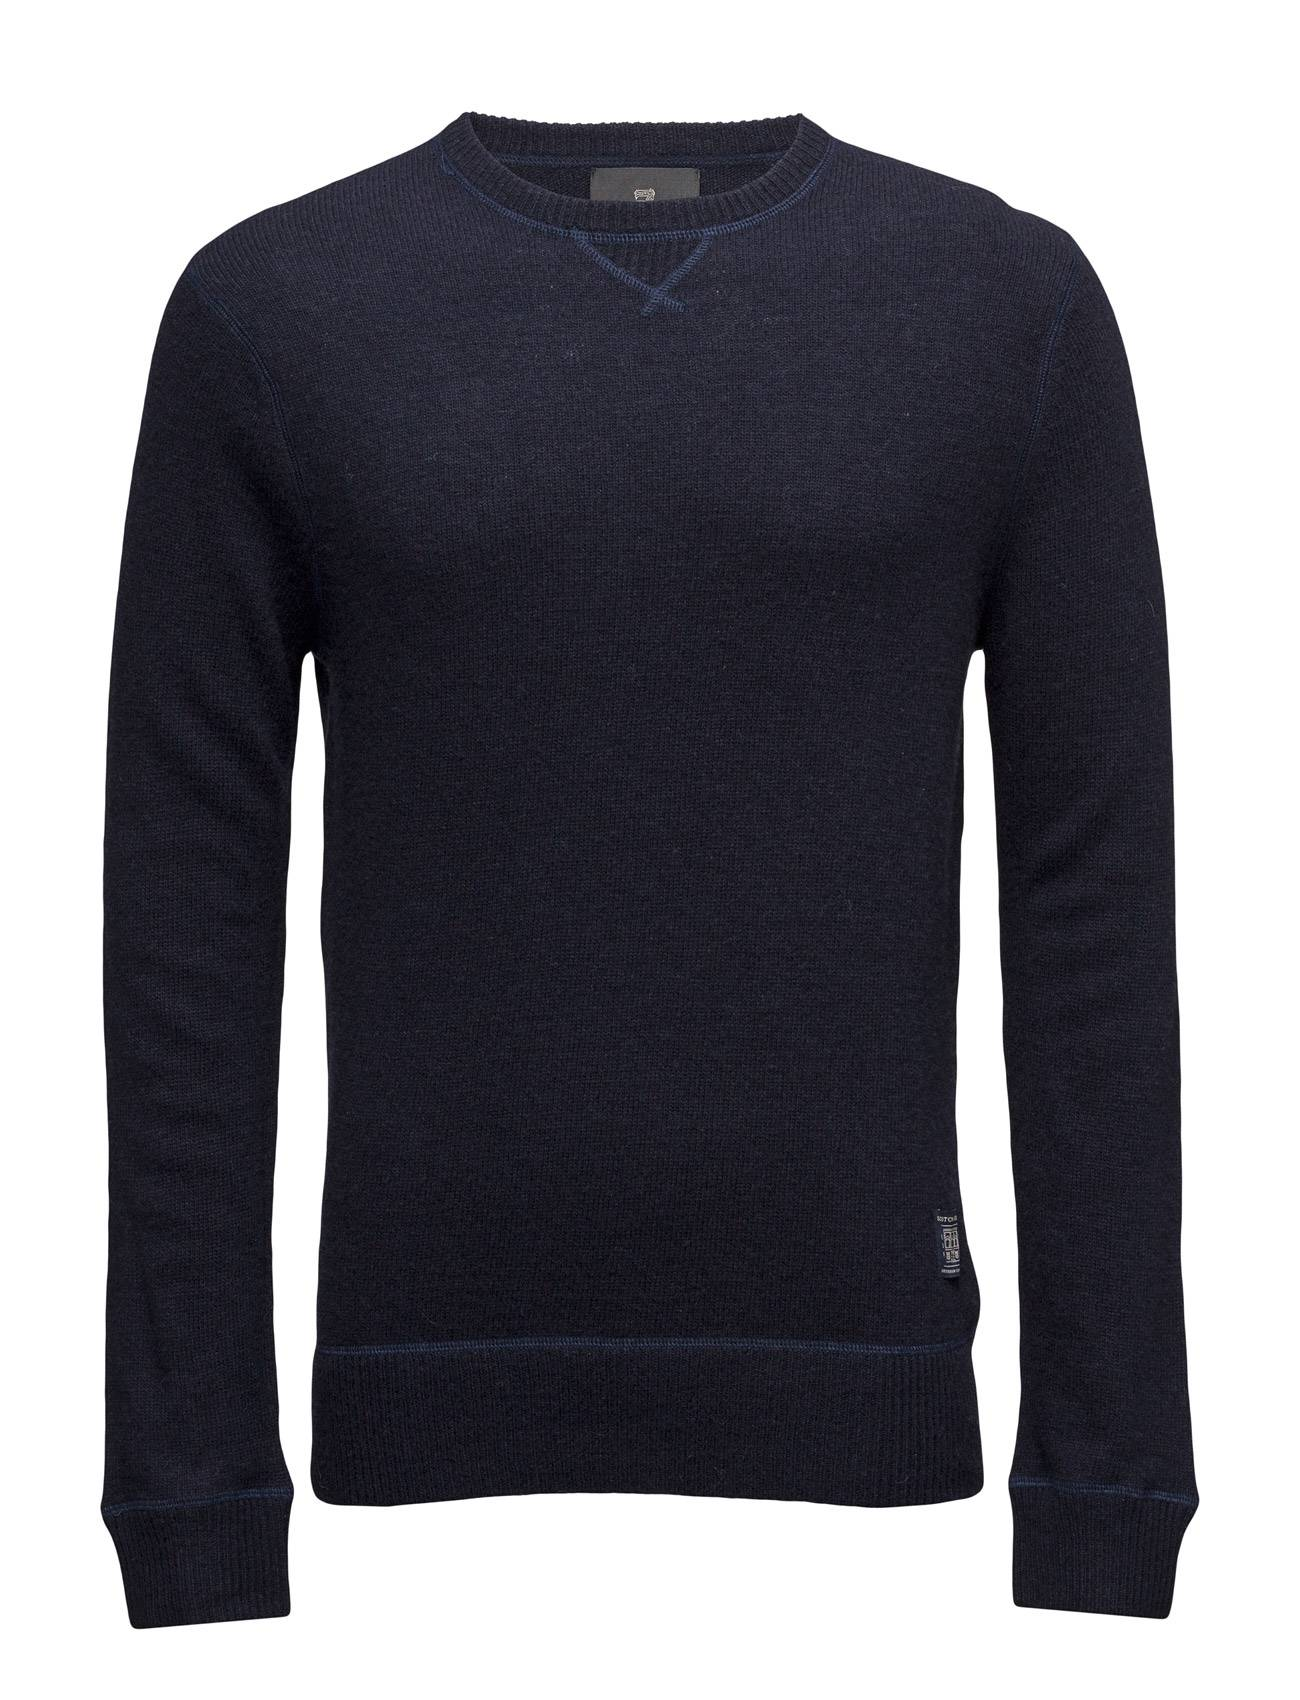 Scotch & Soda Crewneck Pullover In Boiled Wool Quality